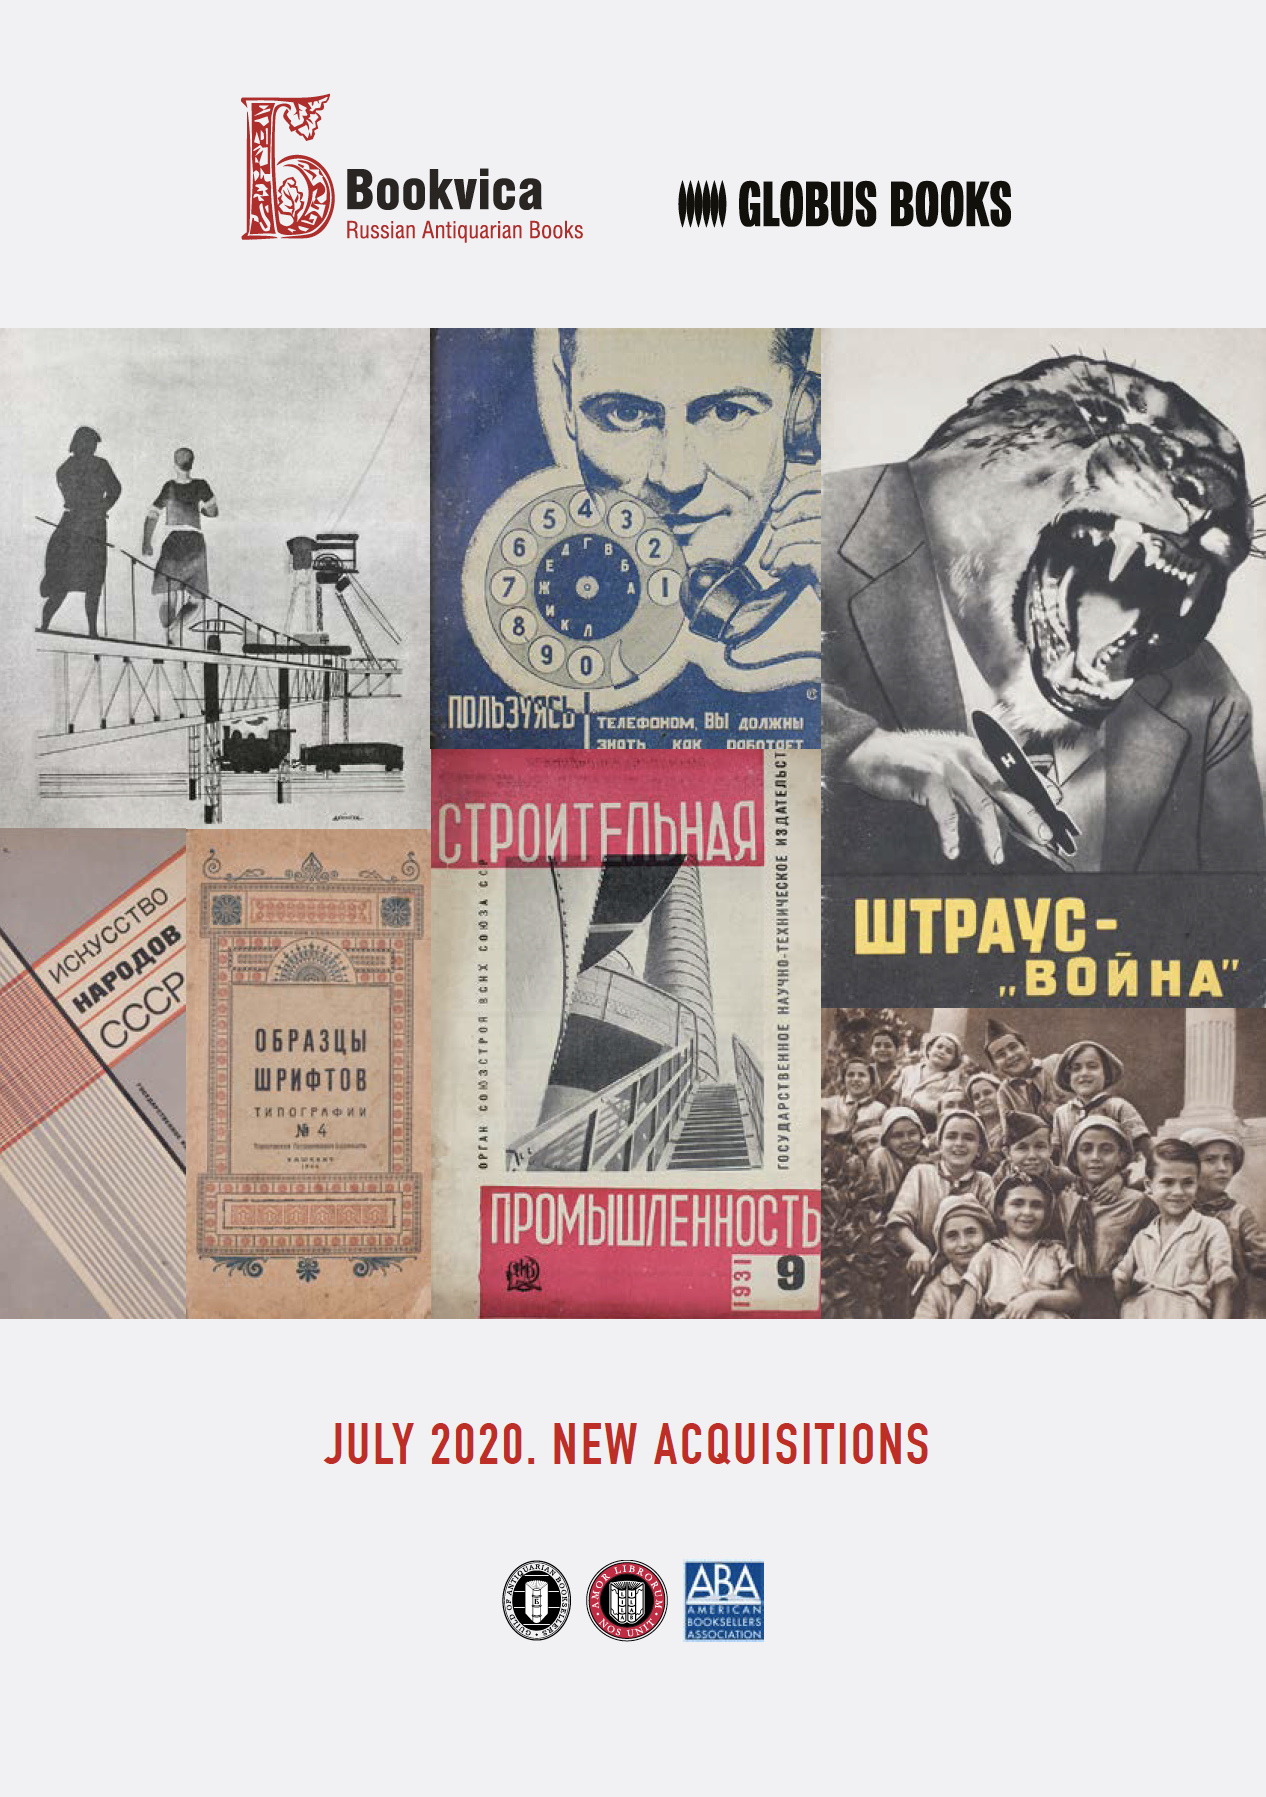 July 2020. New Acquisitions